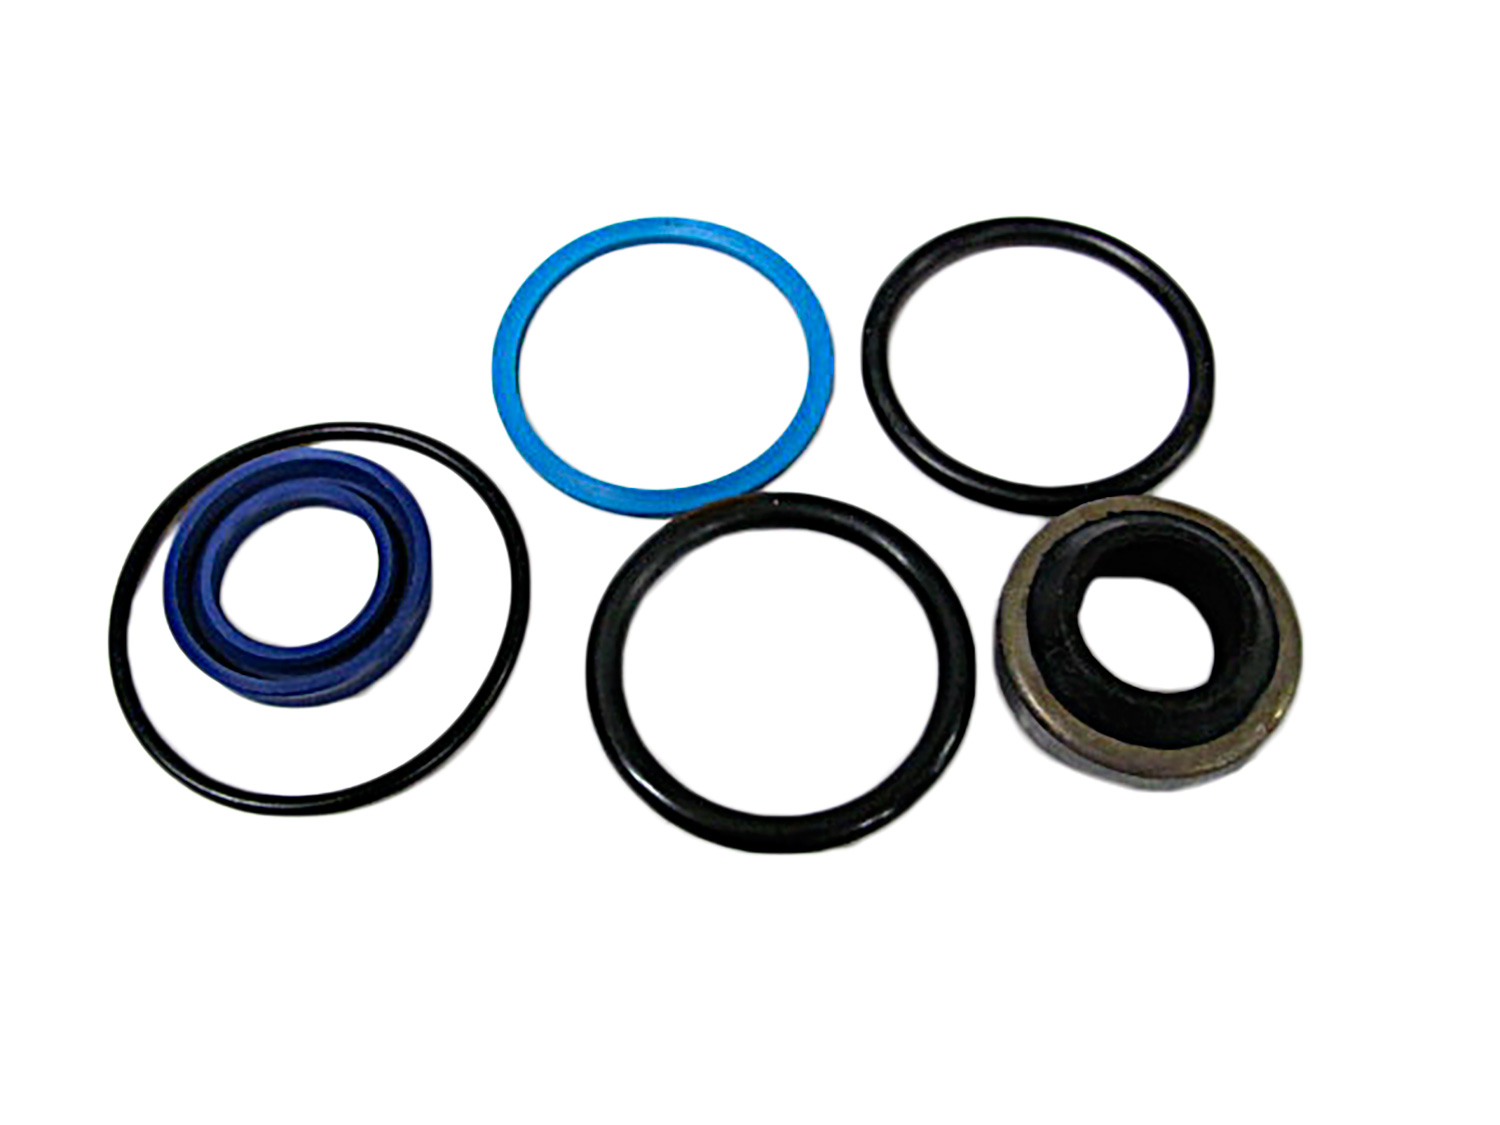 Power Steering Cylinder Seal Kits For Ford  New Holland Compact Tractors